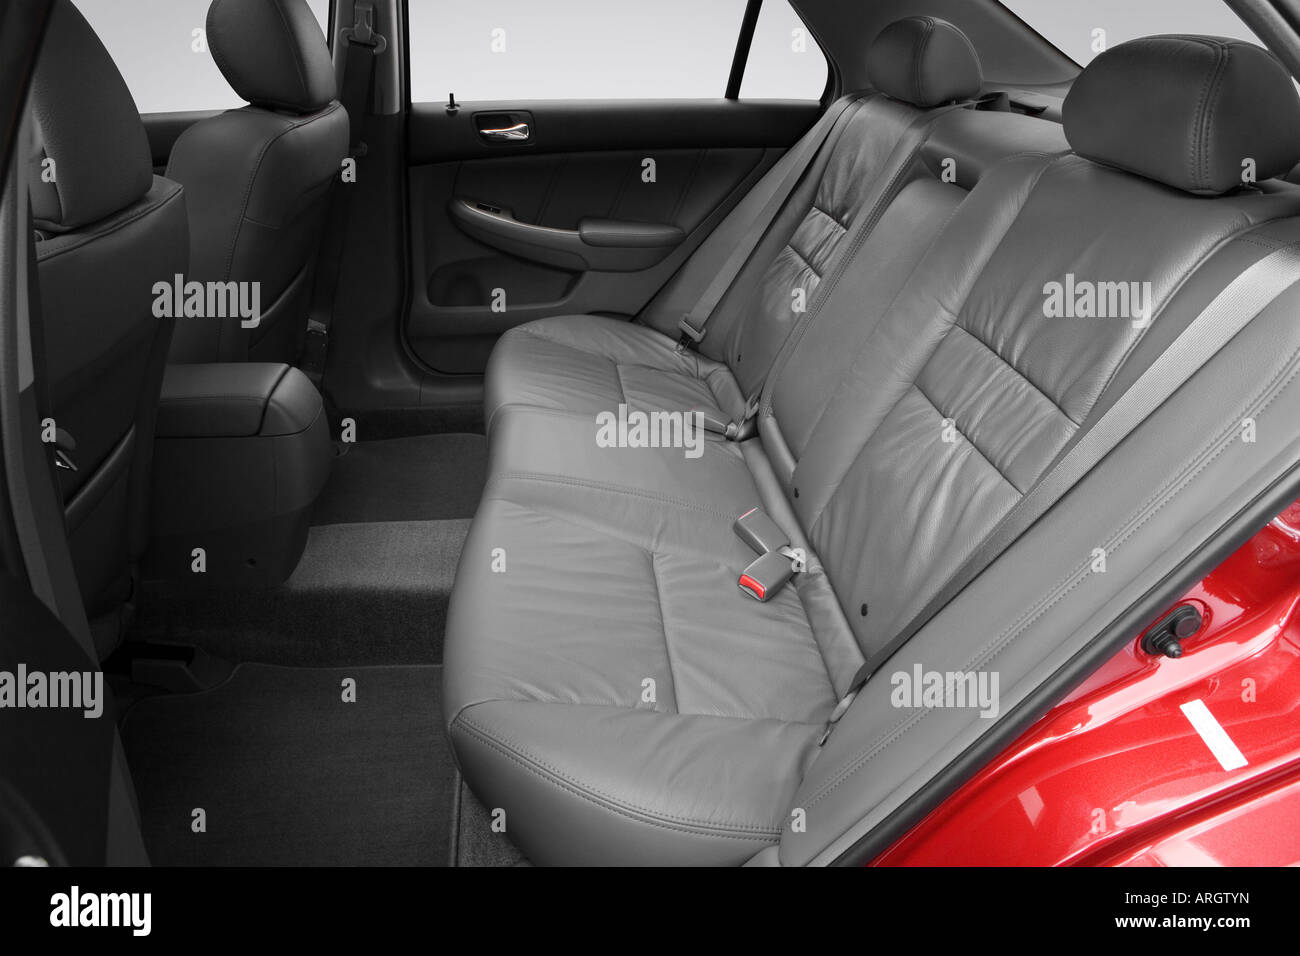 2007 Honda Accord Ex L >> 2007 Honda Accord Ex L In Red Rear Seats Stock Photo